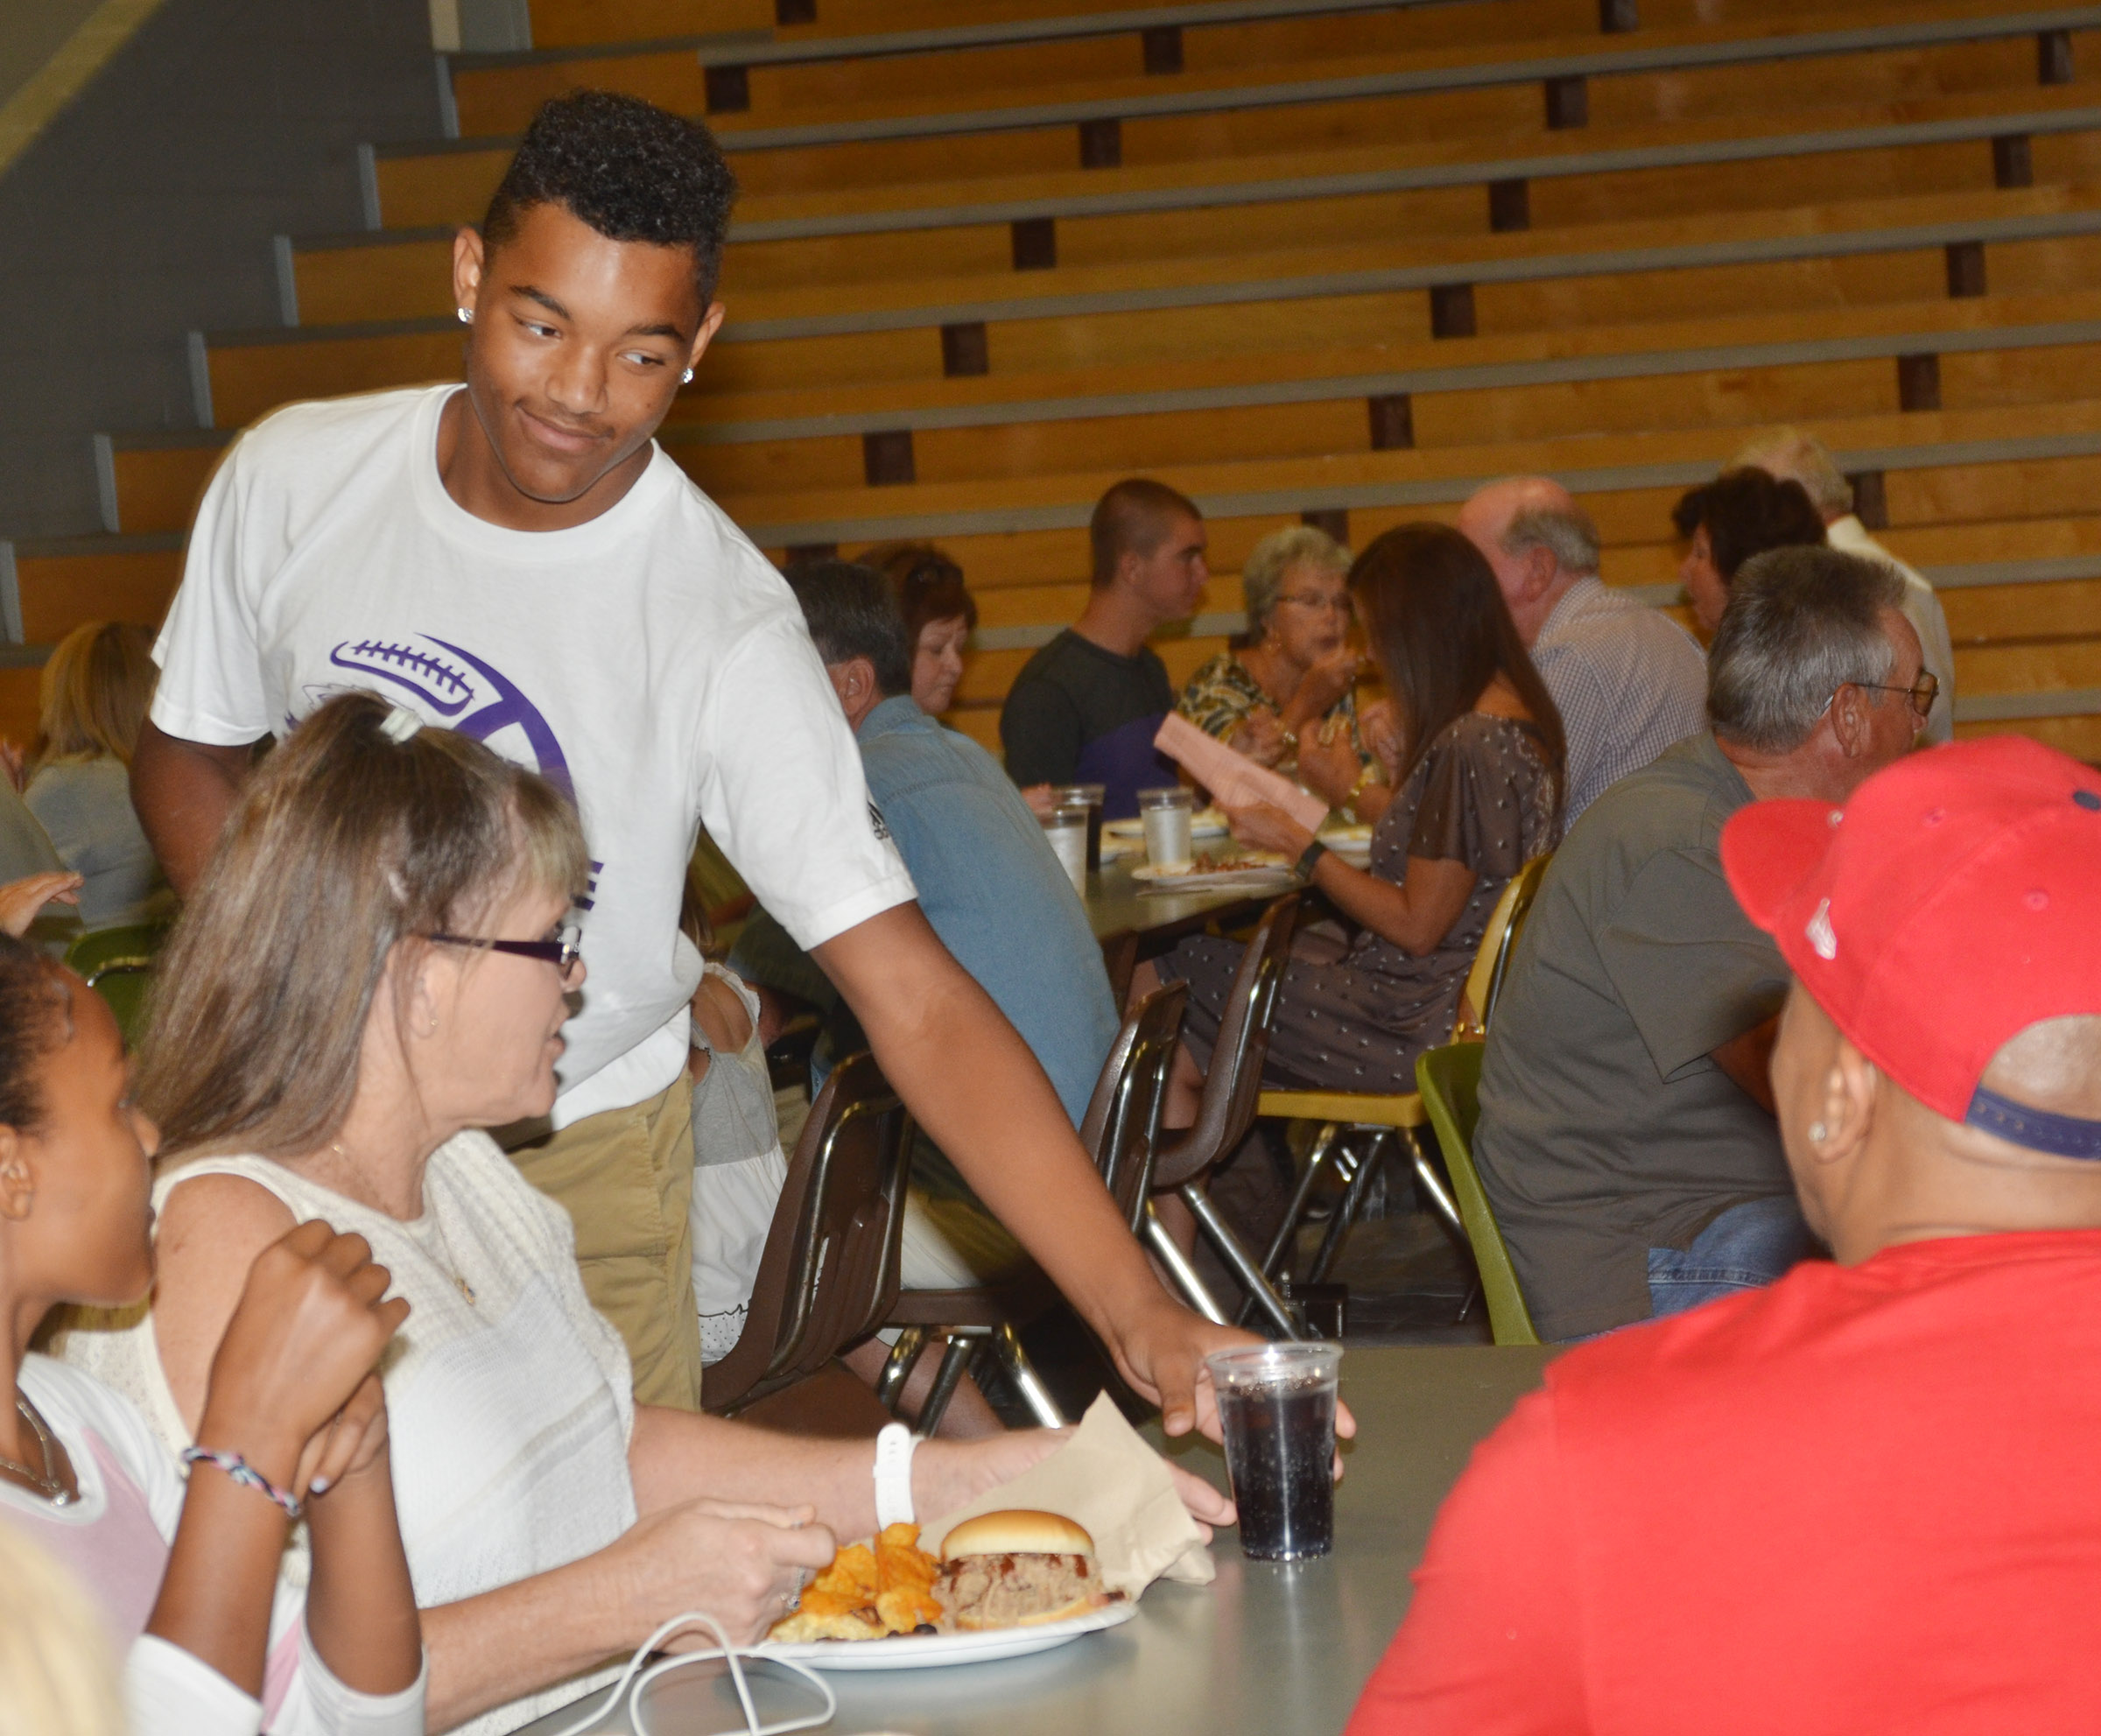 CHS freshman Reggie Thomas serves a drink at the annual CHS football dinner and auction.